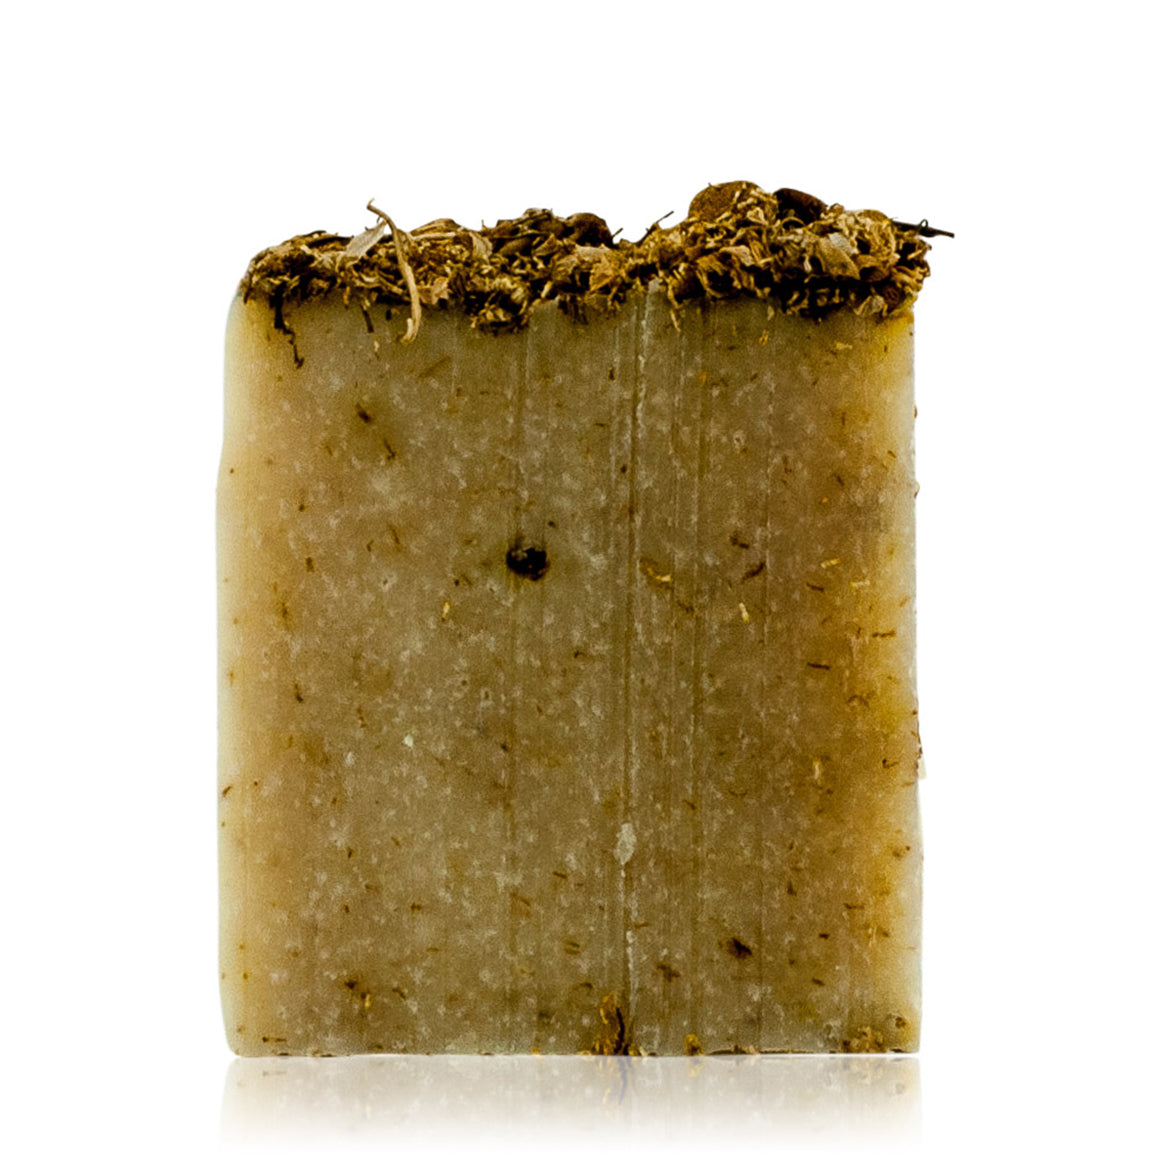 Natural skincare handmade soap bar with Chamomile and Lavender by WiDEYE.